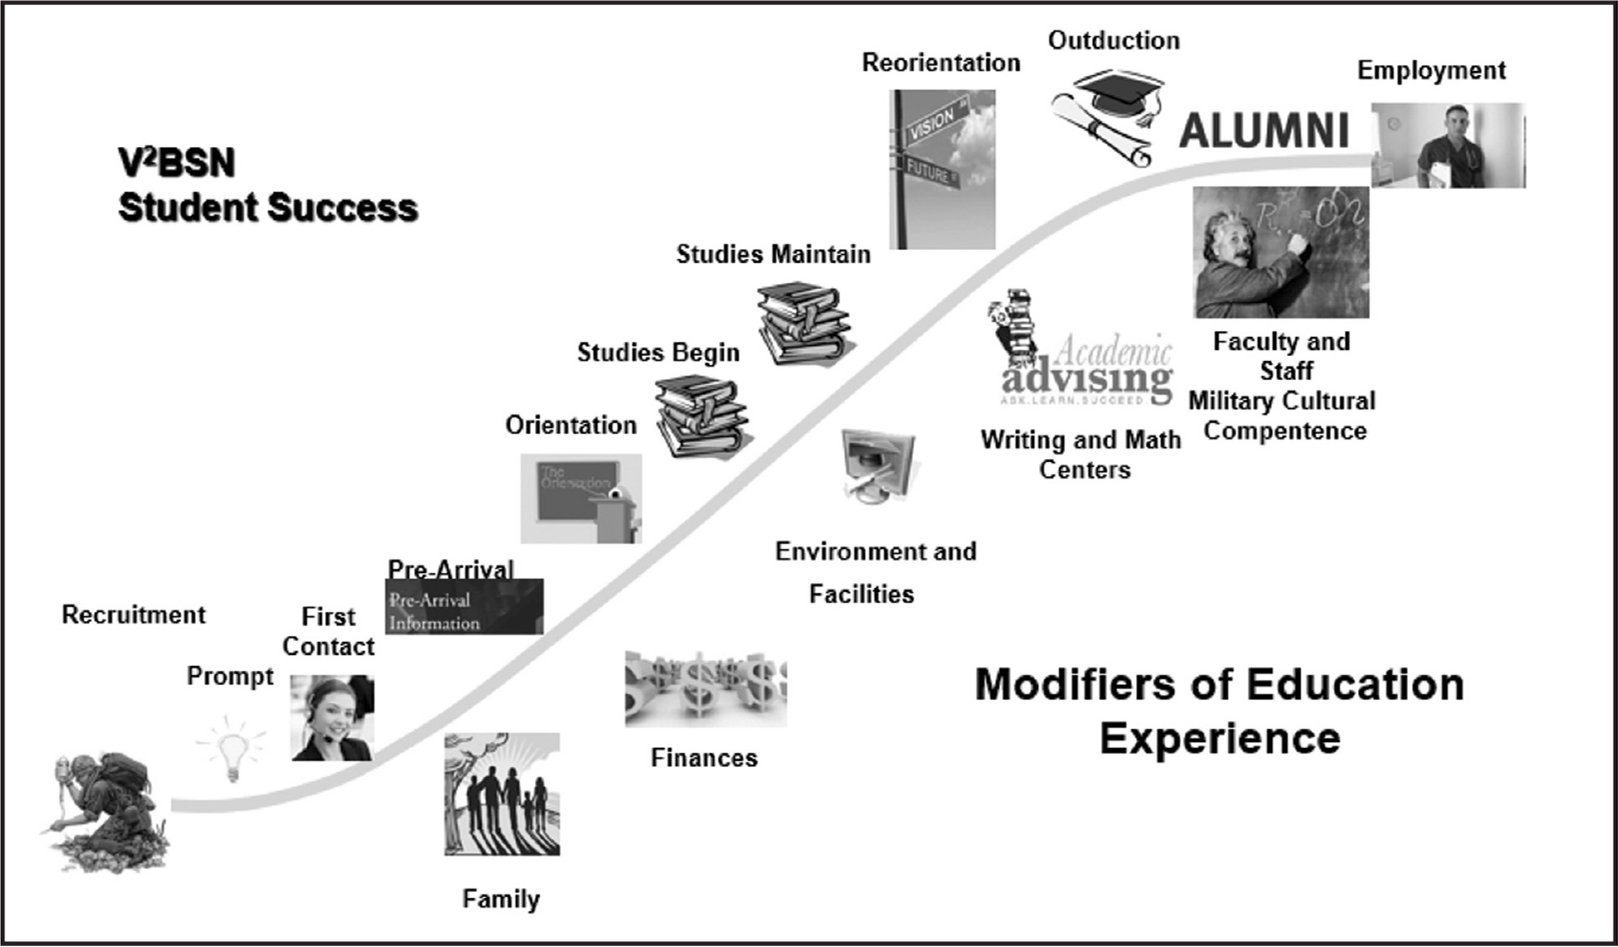 Modifiers of the education experience.